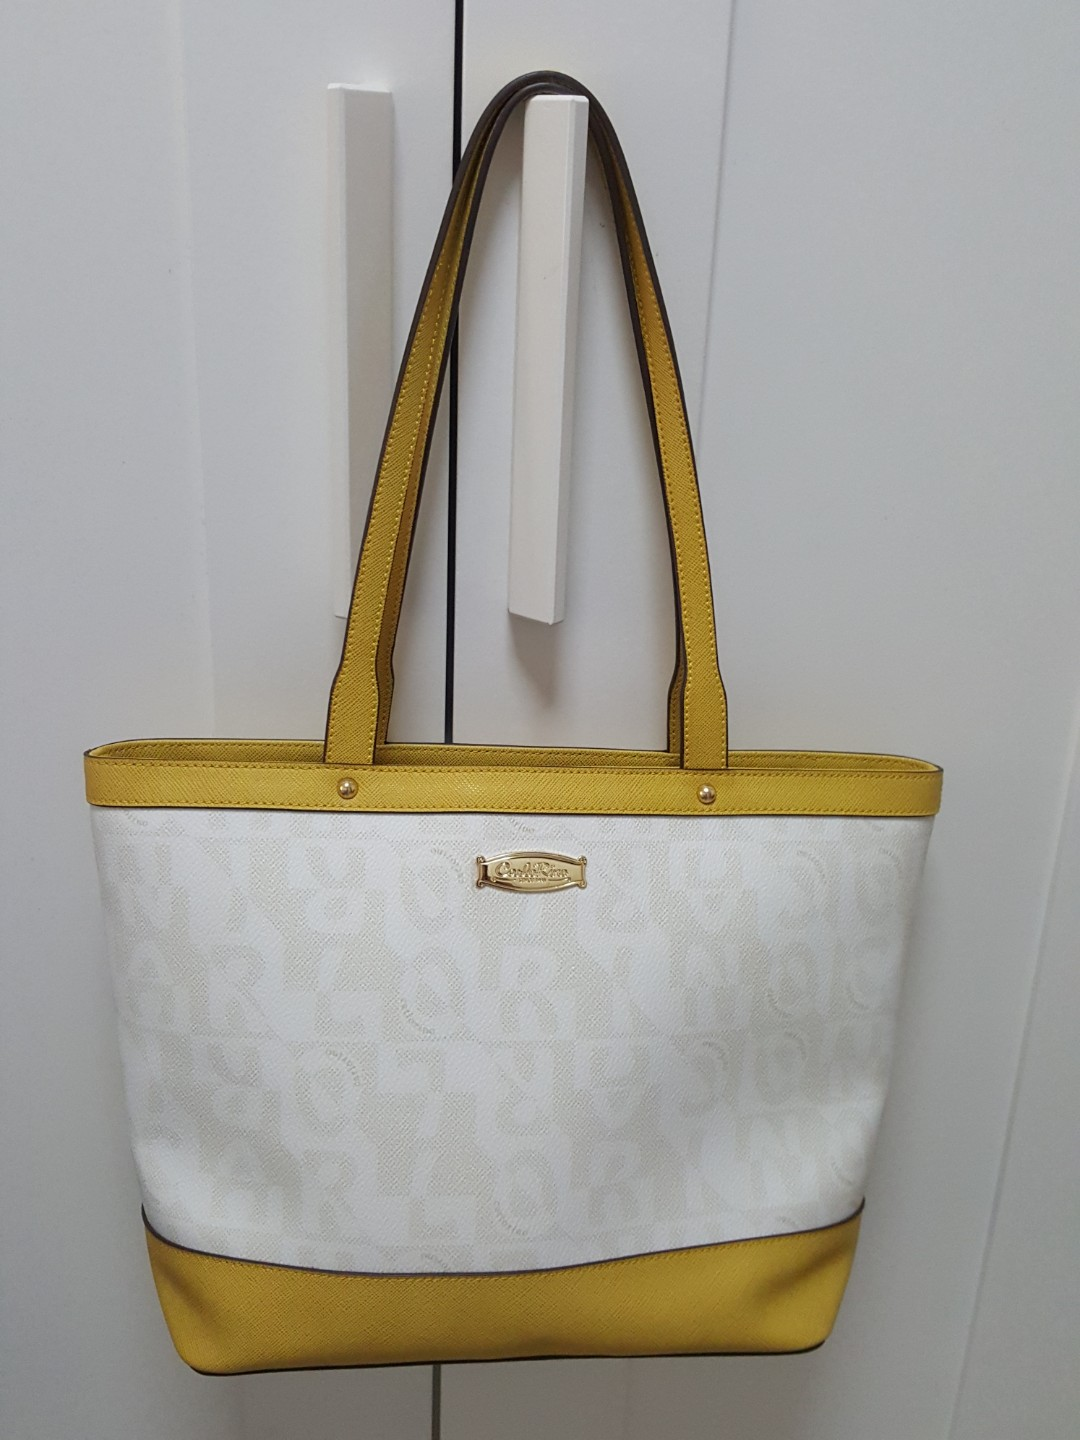 f8e2ac5409cd Who Buys Designer Purses Near Me   Stanford Center for Opportunity ...